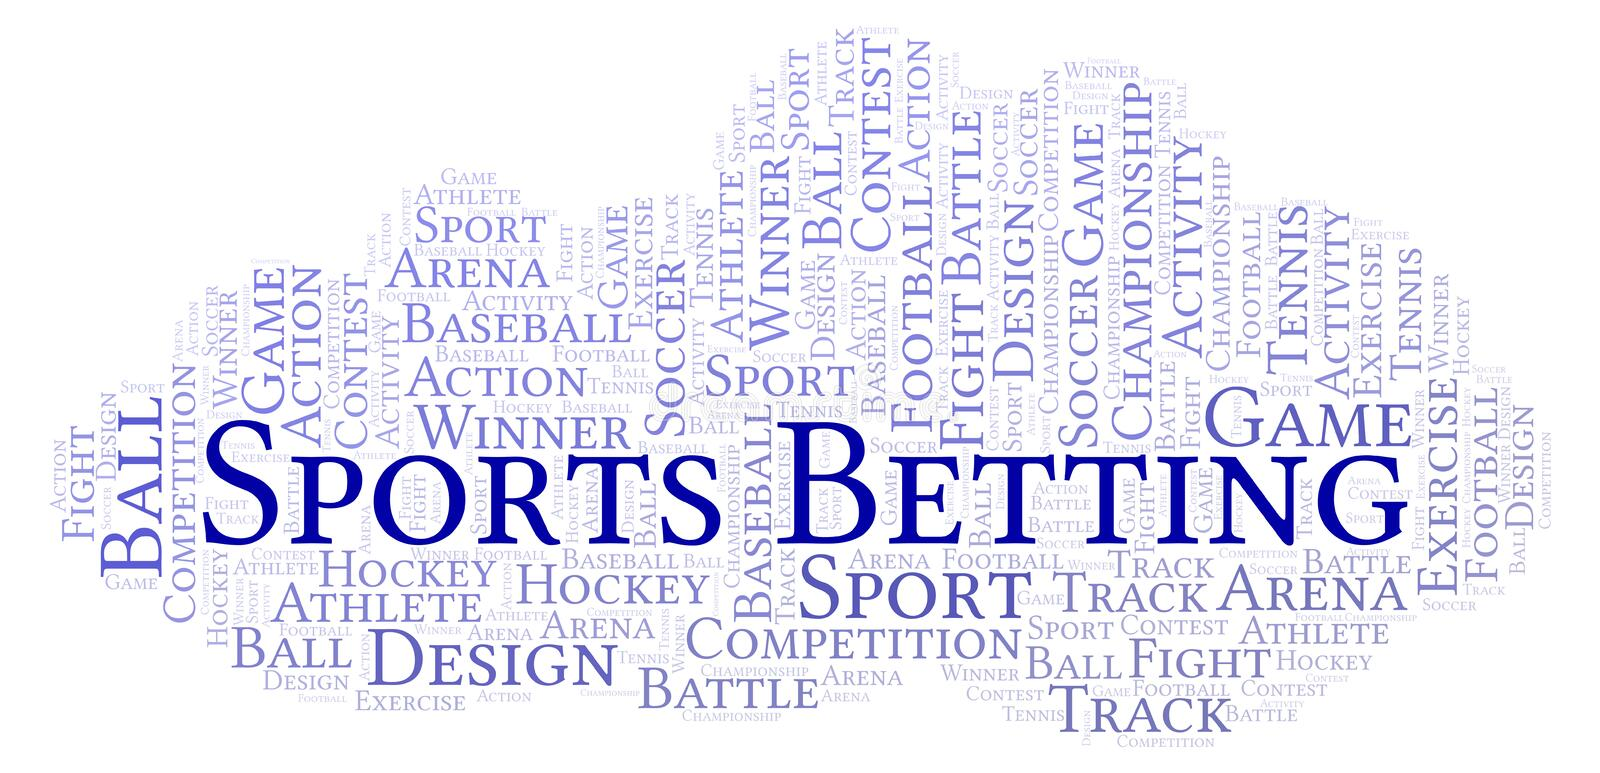 Sports betting text hedging spot forex with binary options